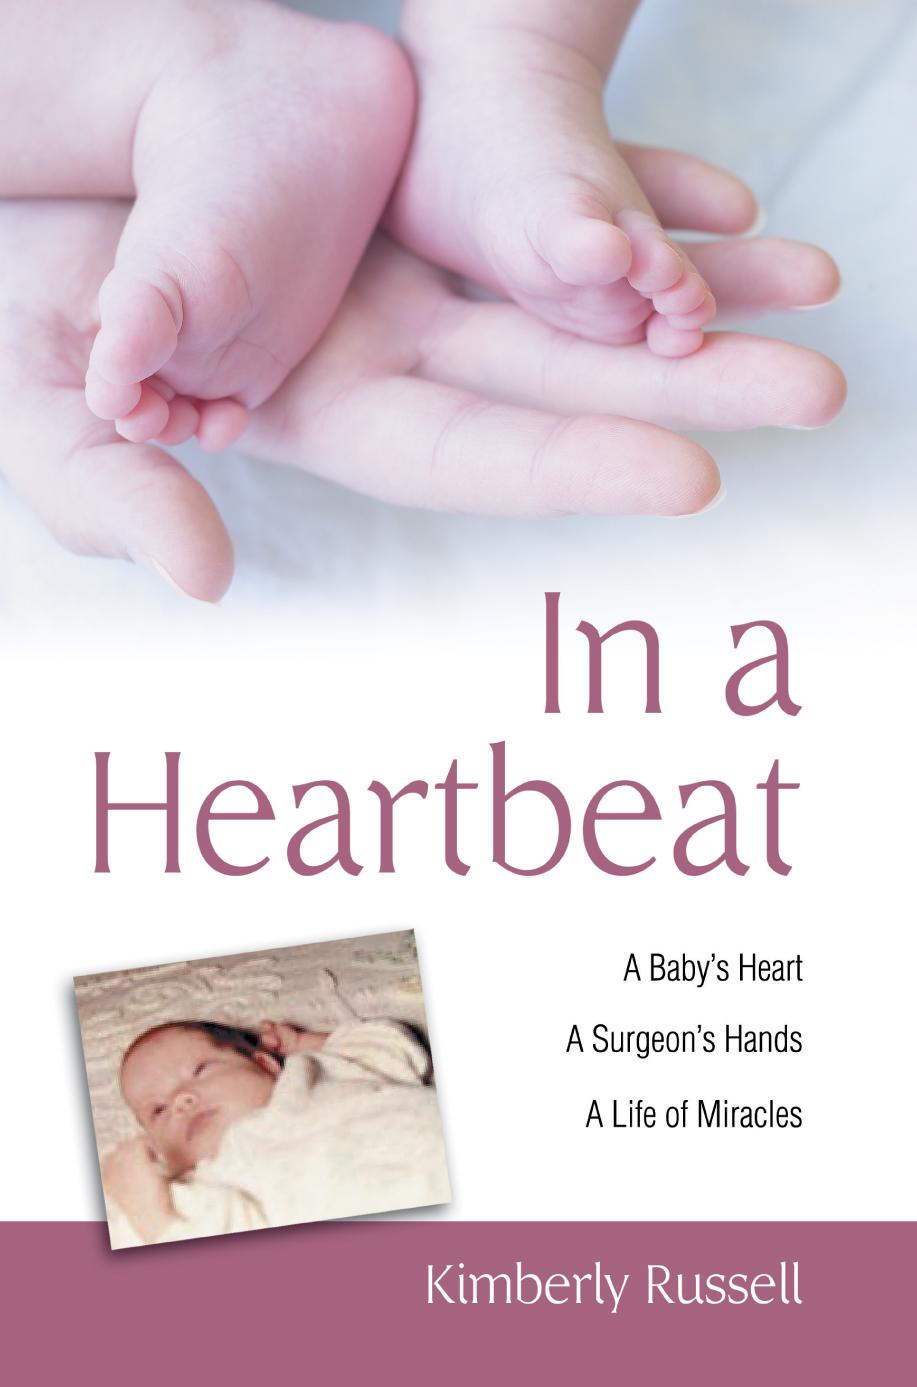 In a Heartbeat: A Baby's Heart, a Surgeon's Hands, a Life of Miracles